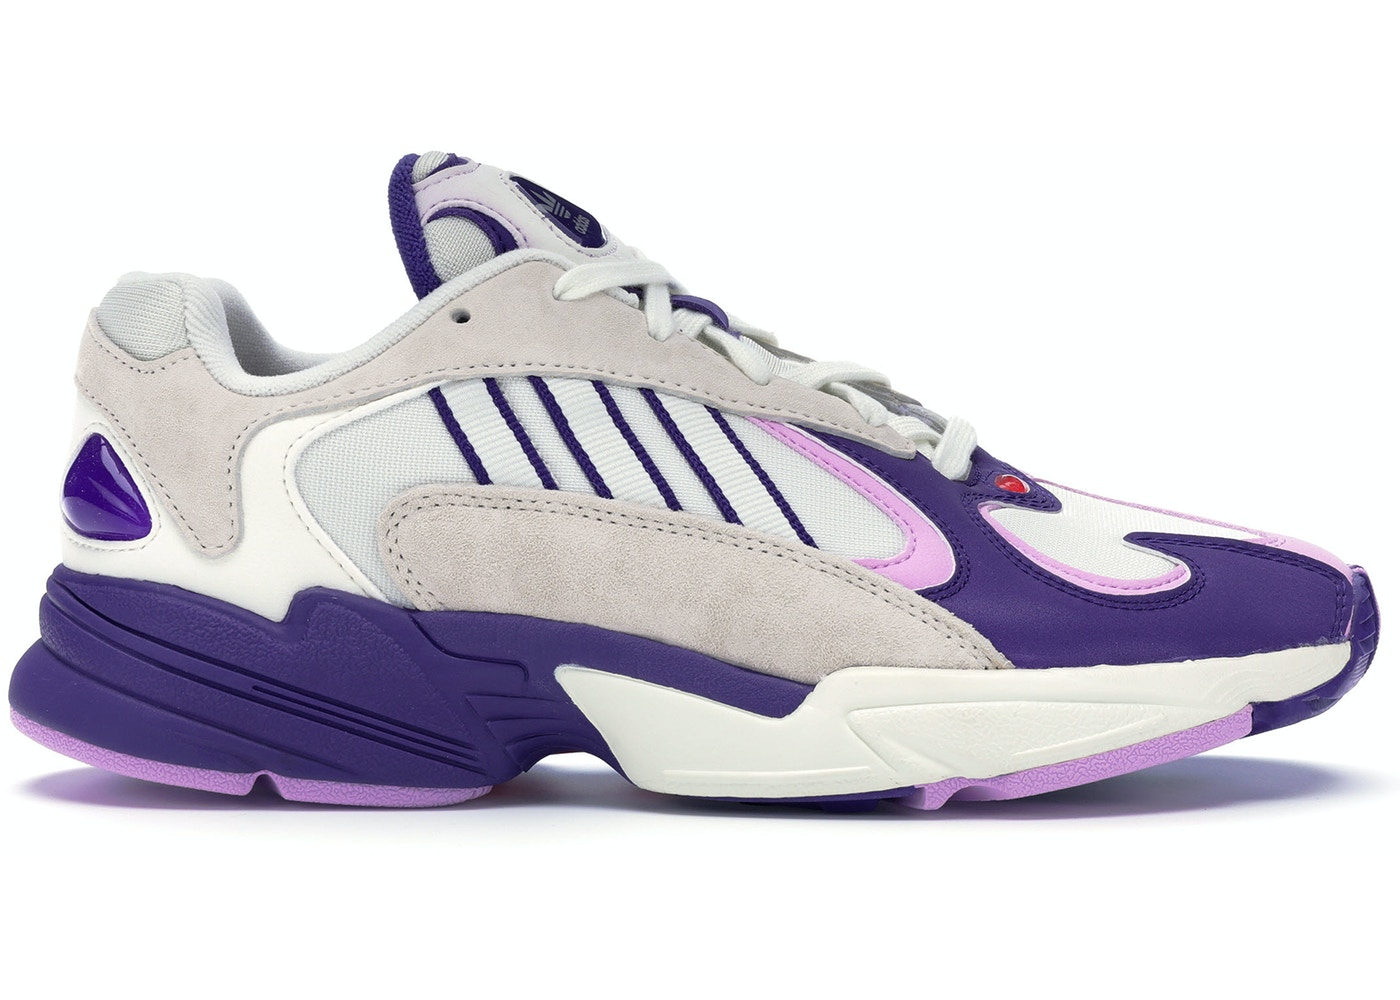 3f0f62a1a831 adidas Yung-1 Dragon Ball Z Frieza - D97048